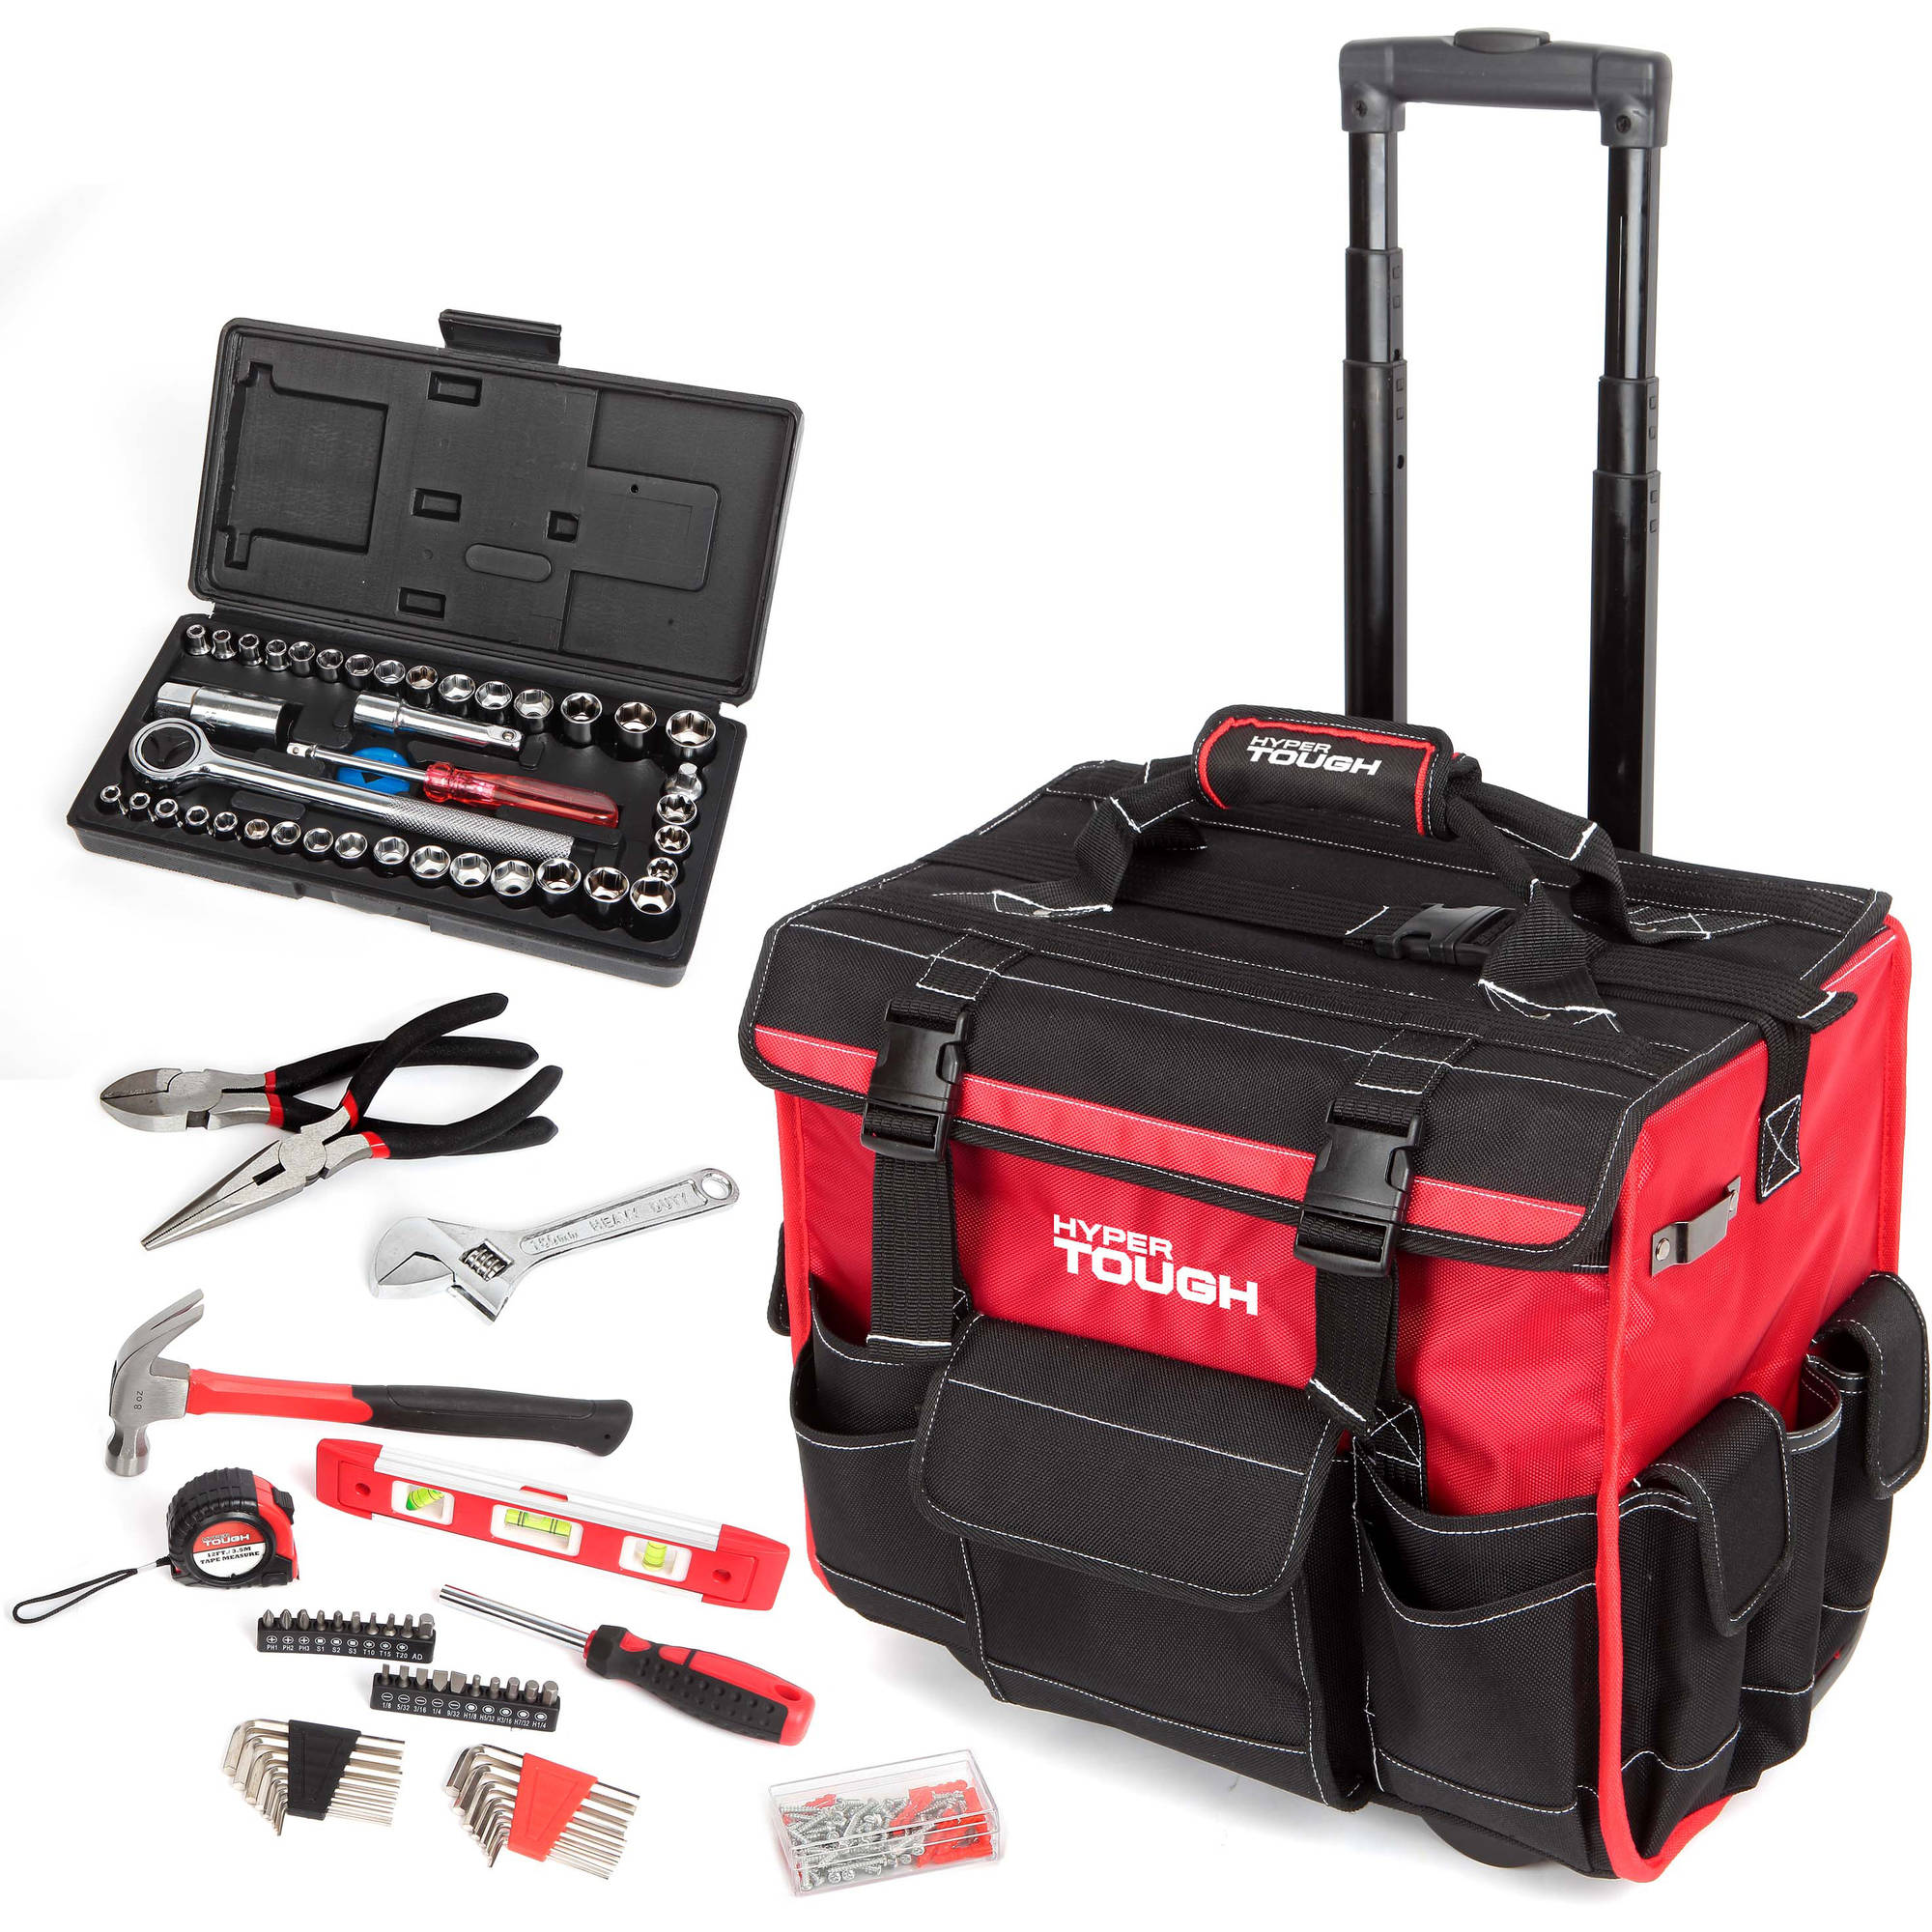 HyperTough 174-Piece Tool Set with Trolley Bag by HANGZHOU GREAT STAR TOOLS CO. LTD.